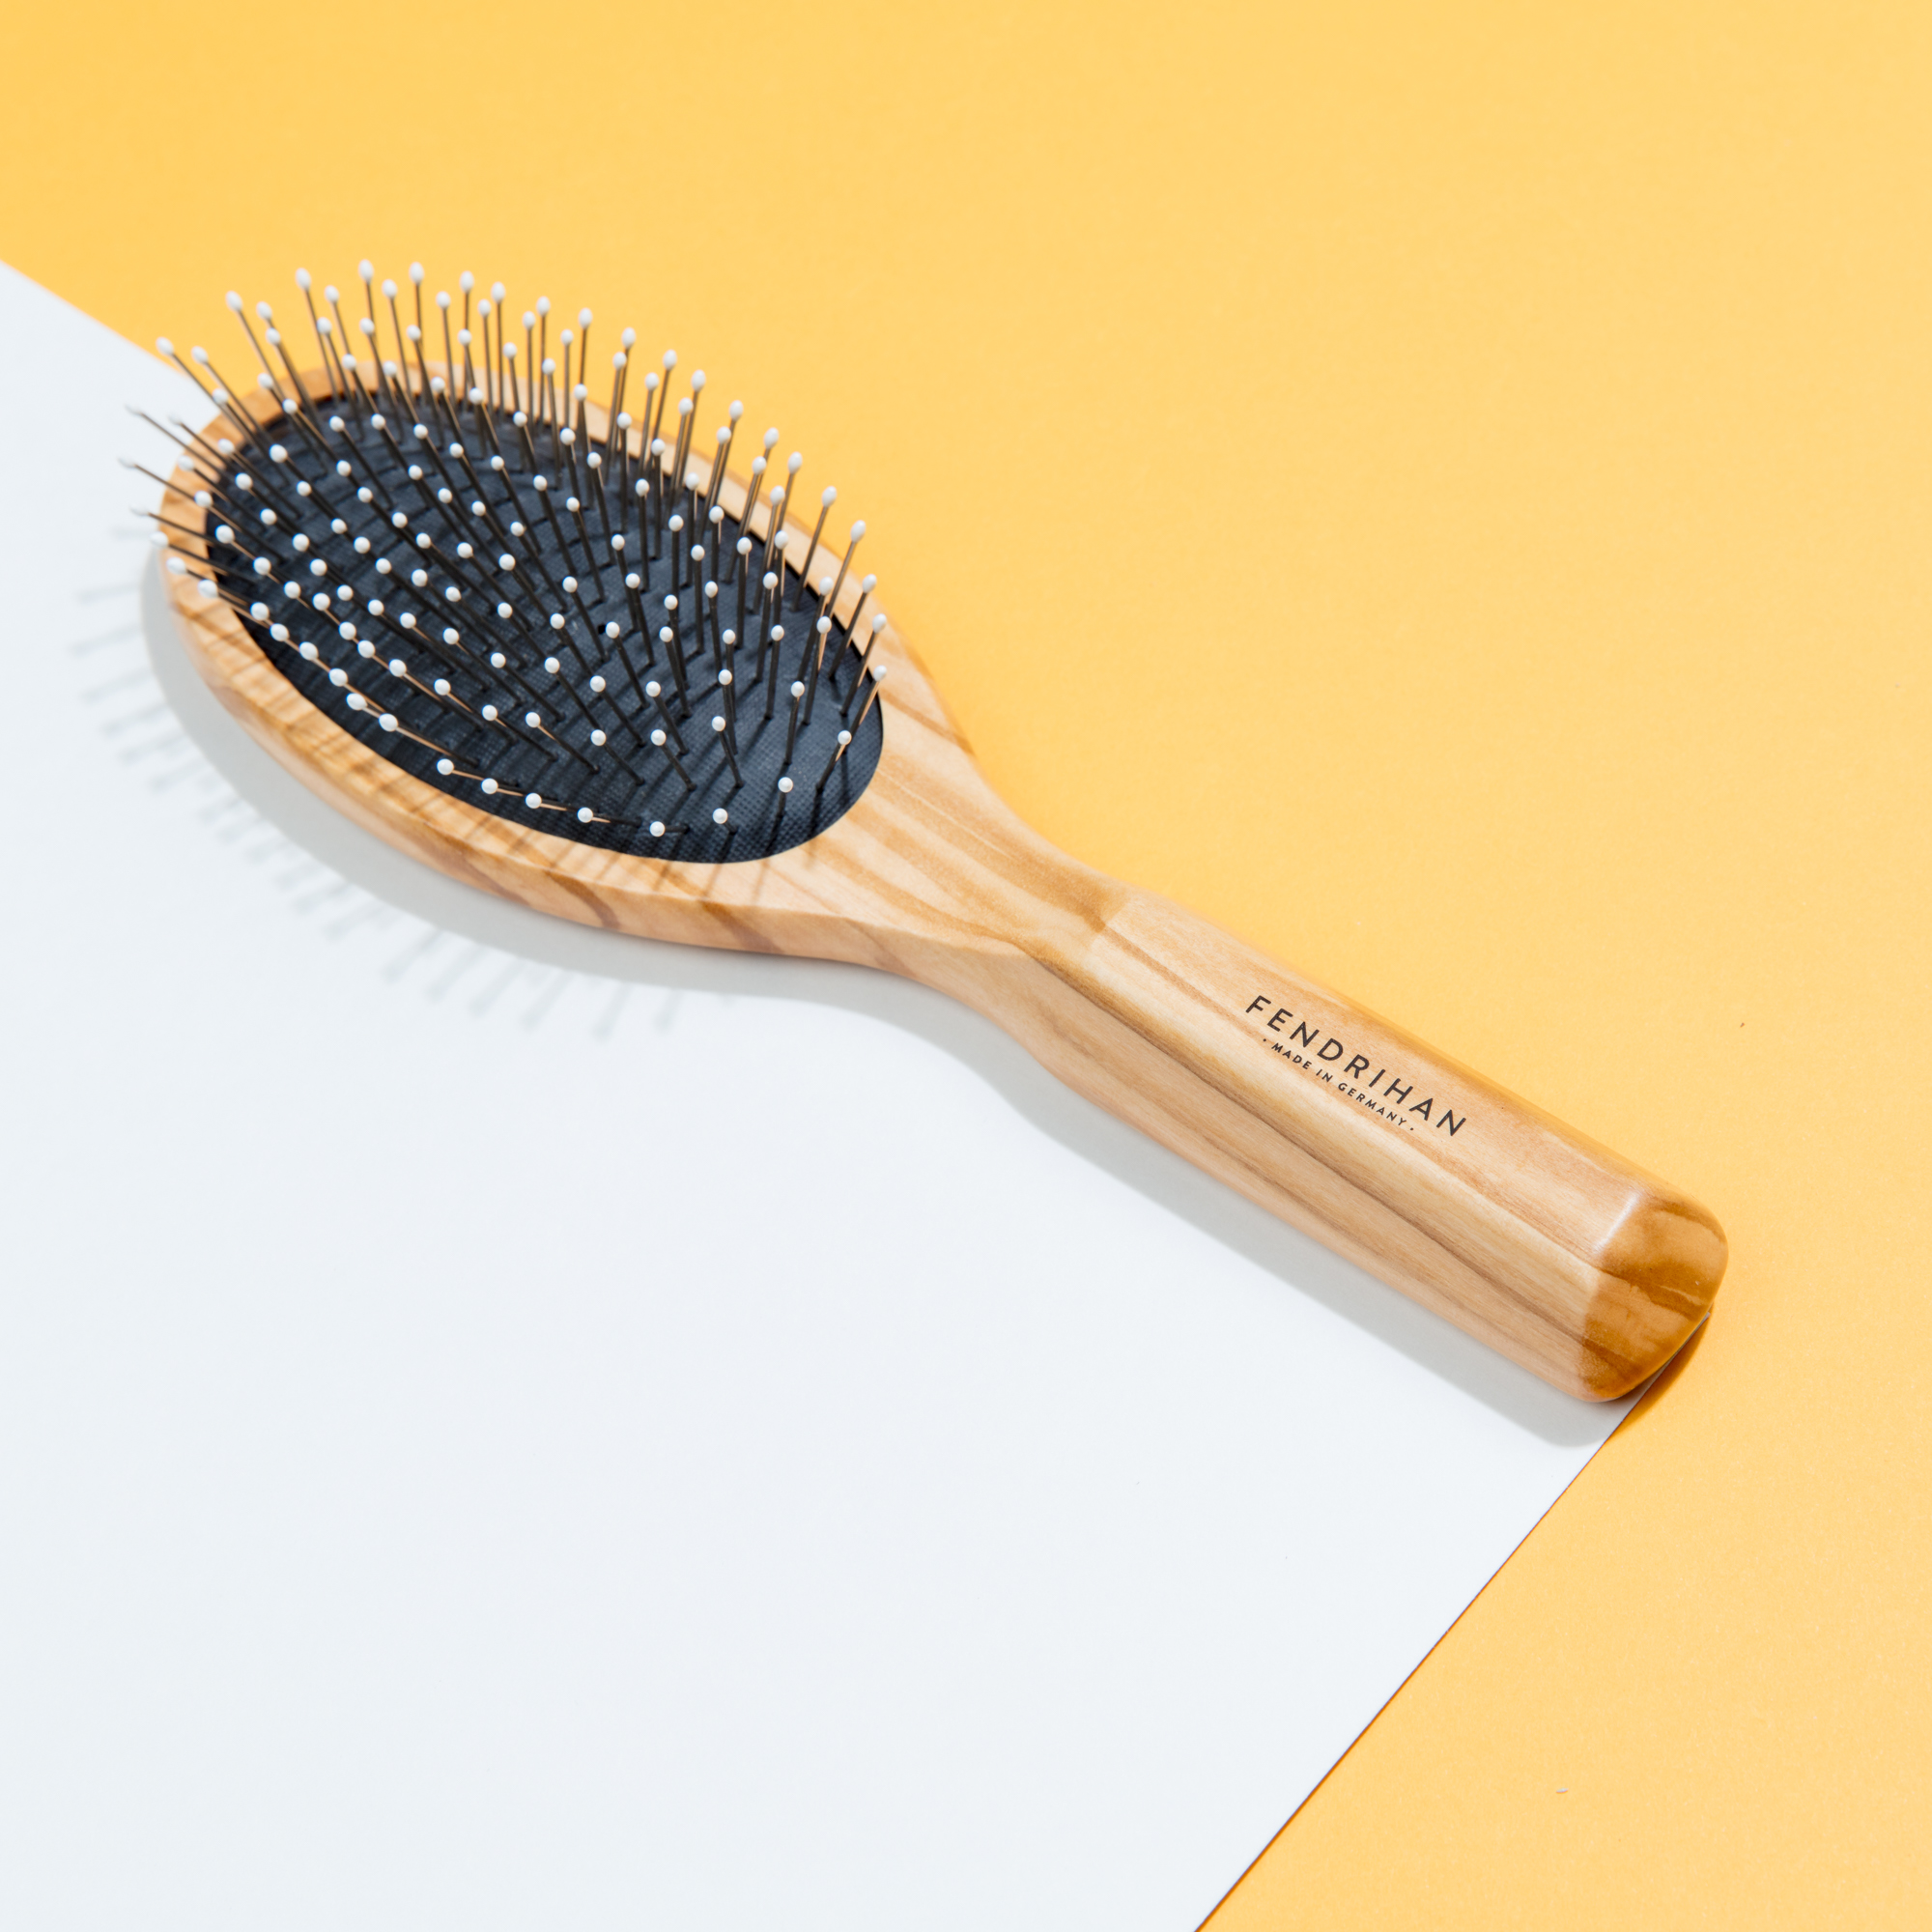 Pneumatic Hair Brushes